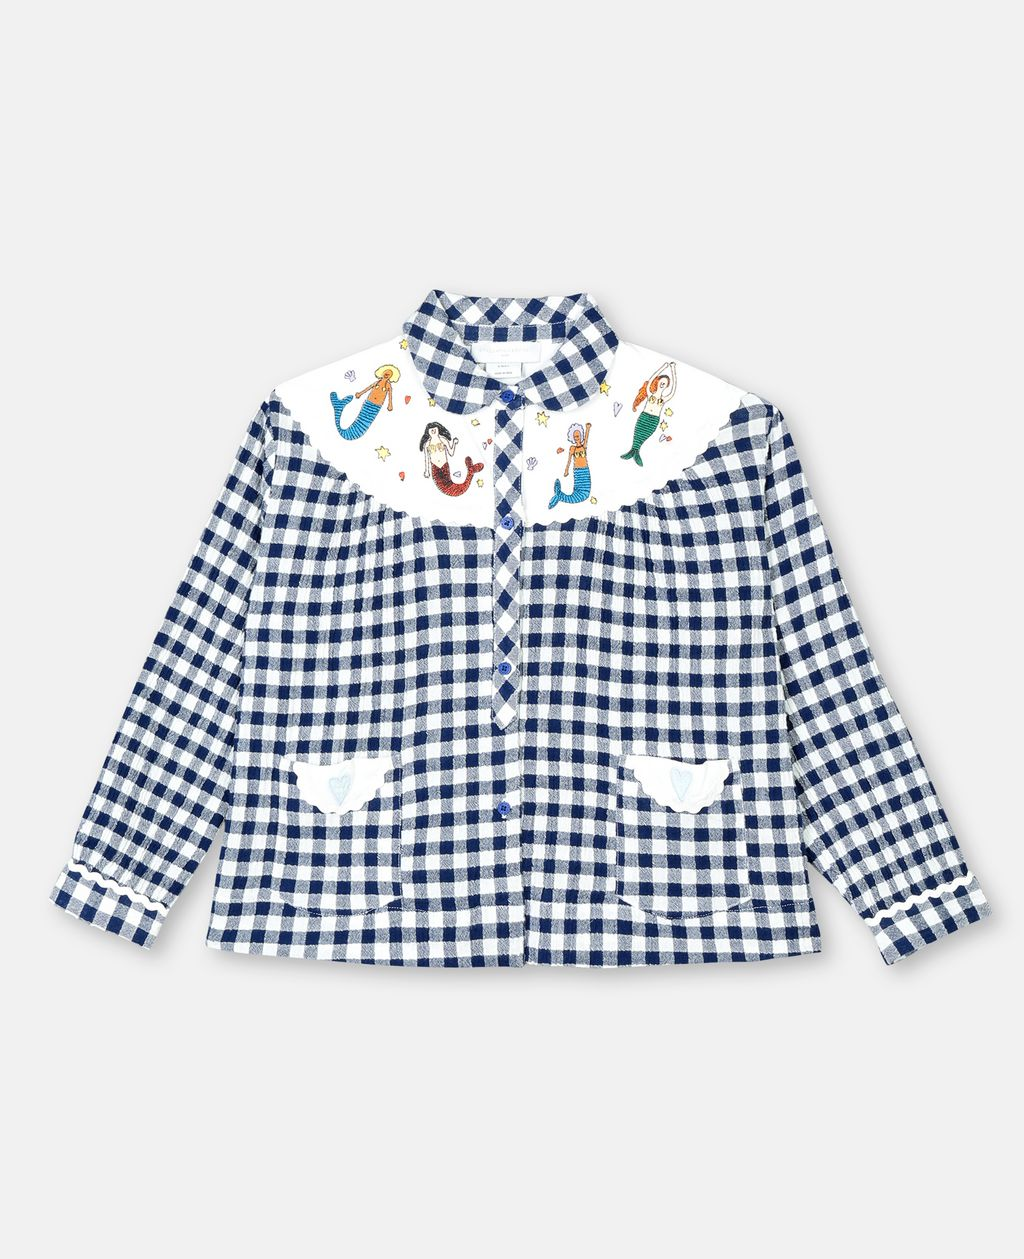 Mermaids Vichy Shirt Airforce Stella McCartney Kids | Zirkuss